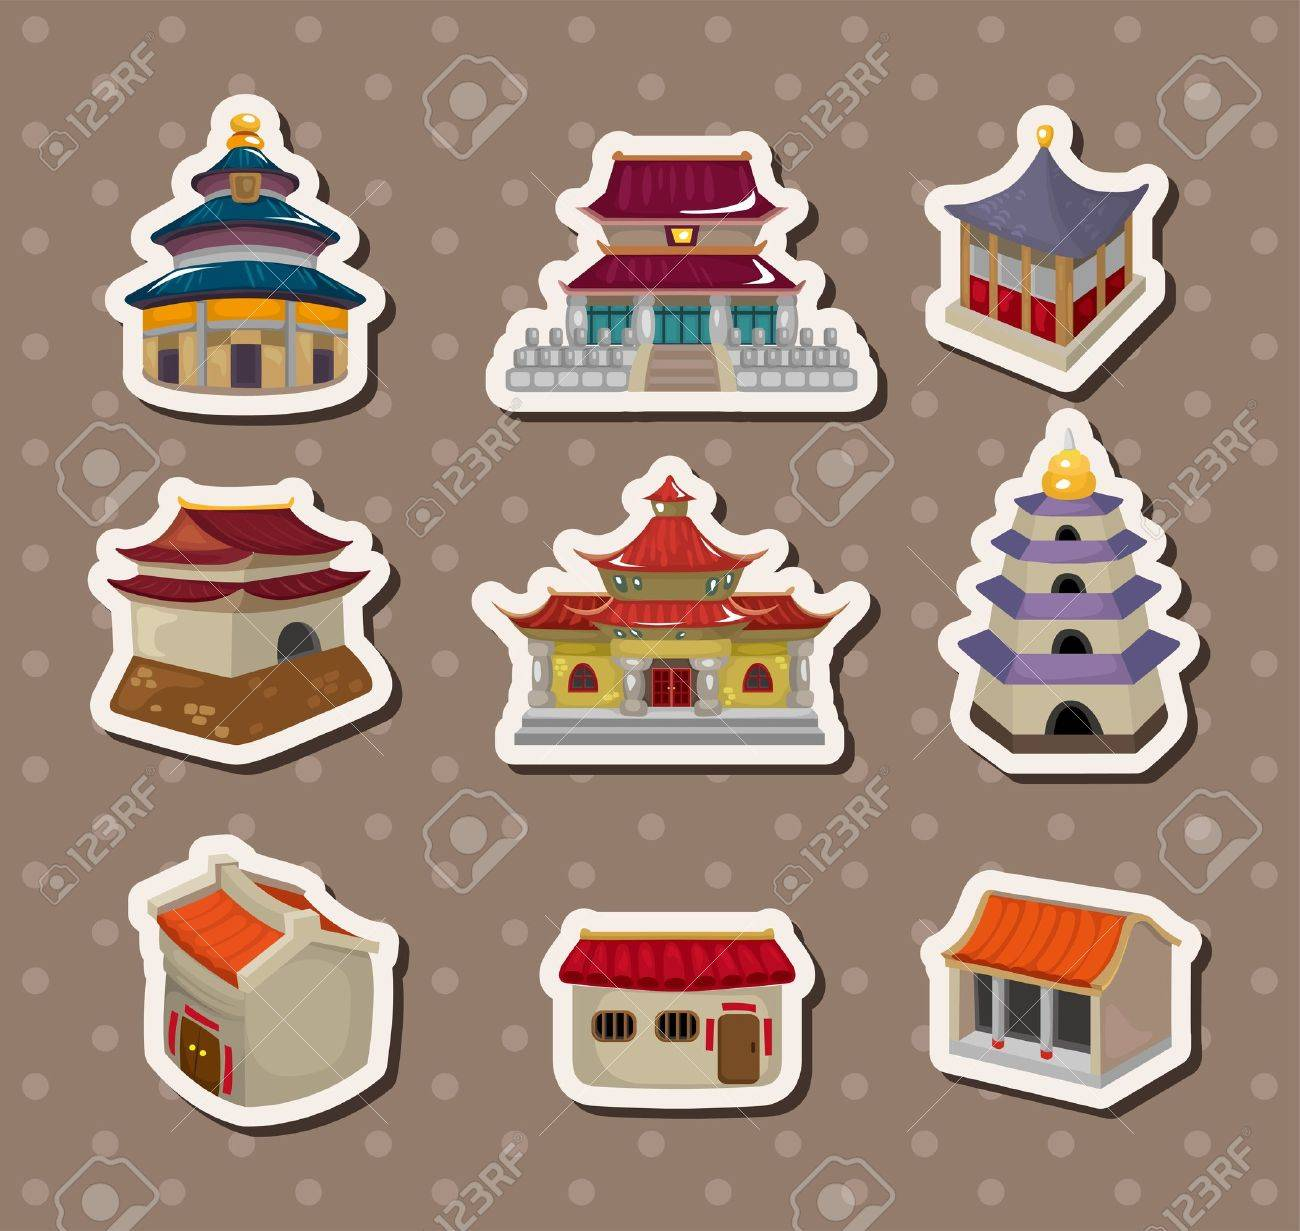 Chinese house stickers - 14829393